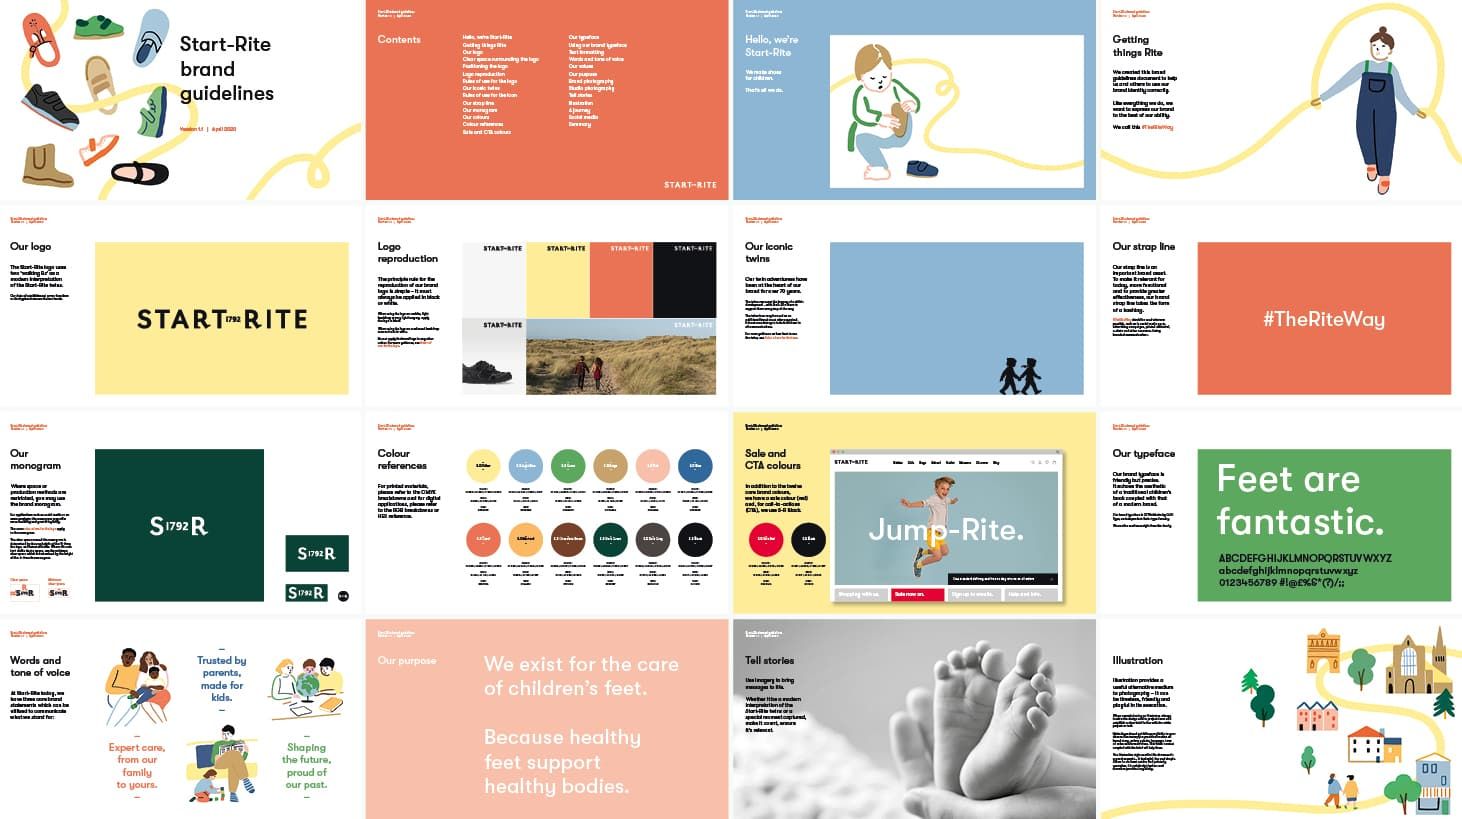 Start-Rite brand guidelines pages